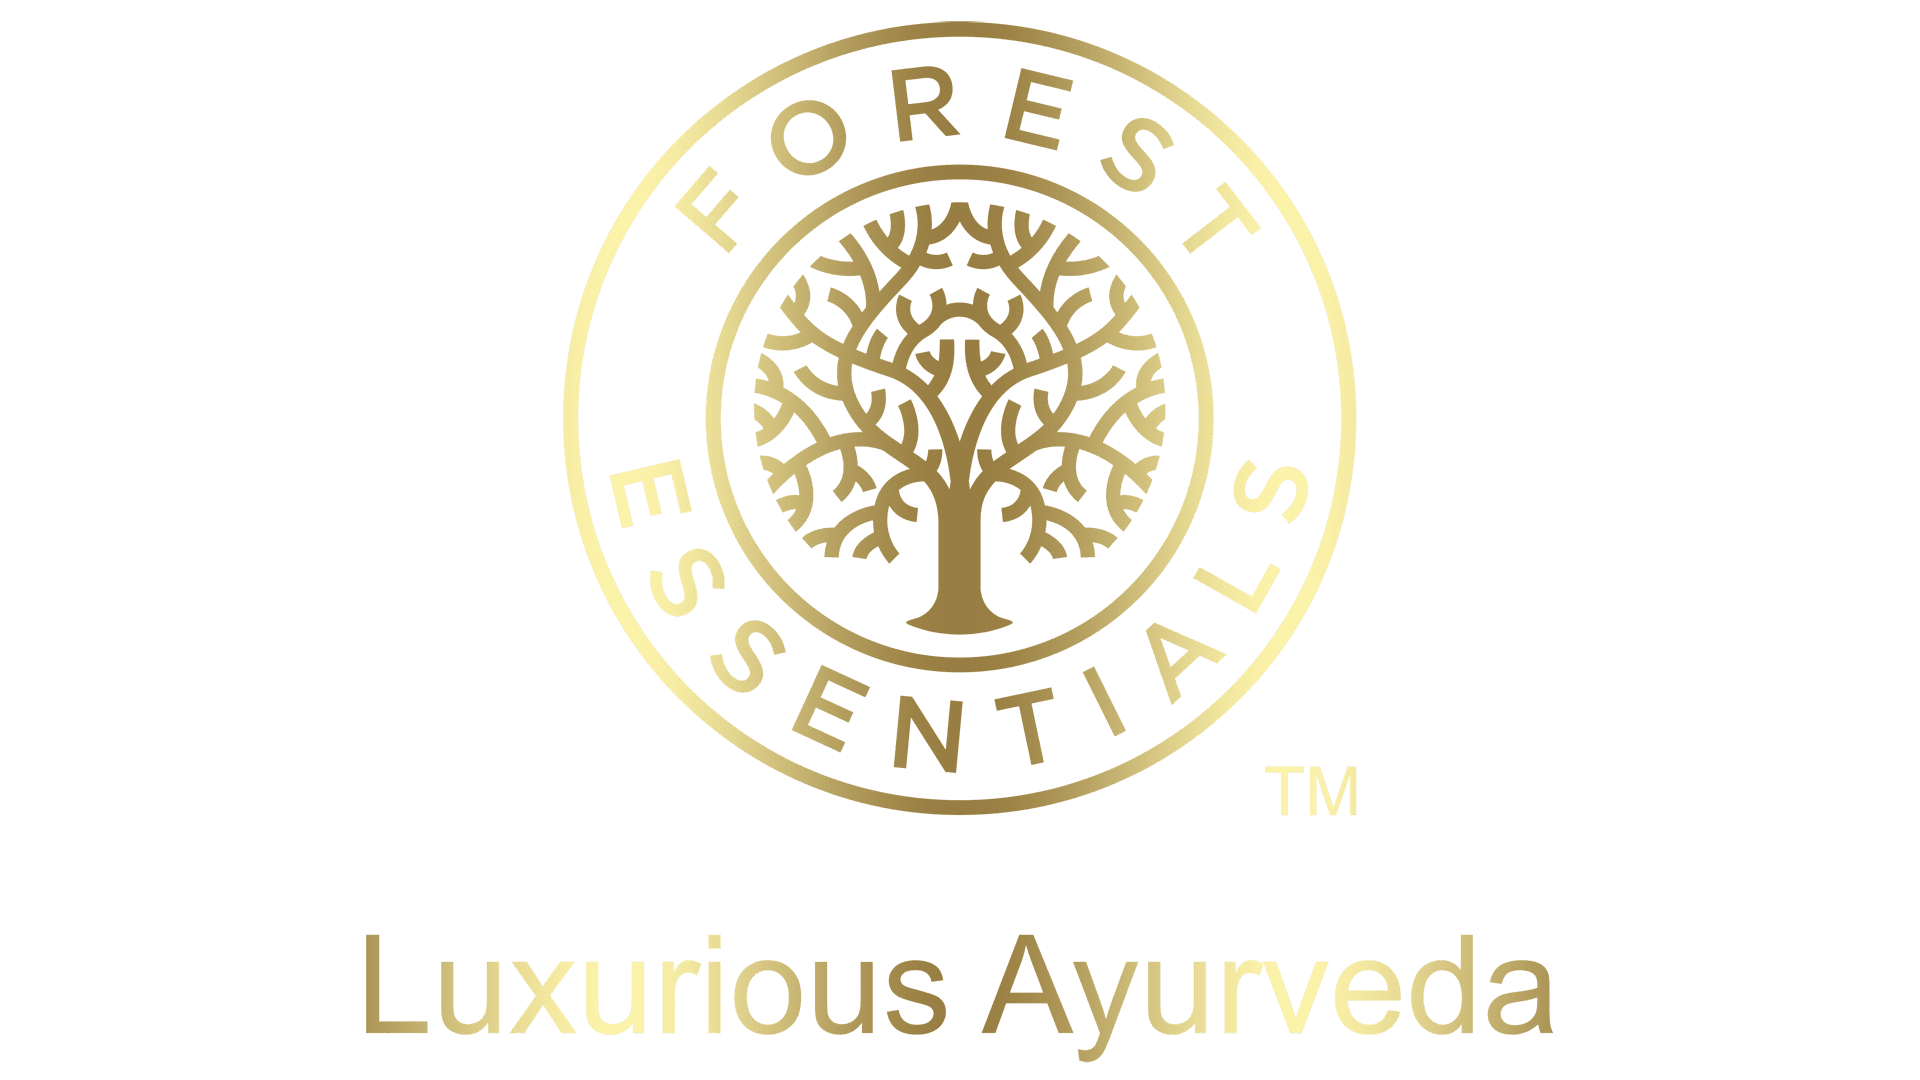 Forest Essentials logo and symbol, meaning, history, PNG